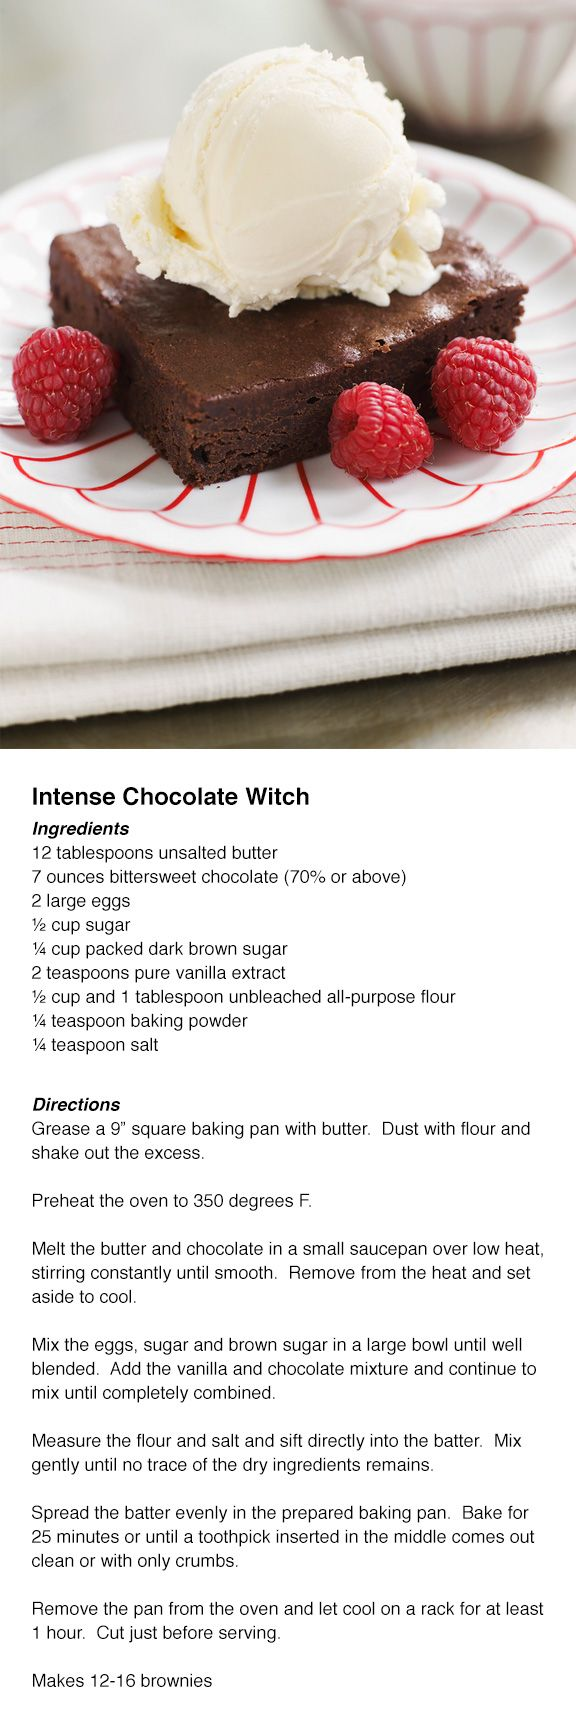 Intense Chocolate Witch